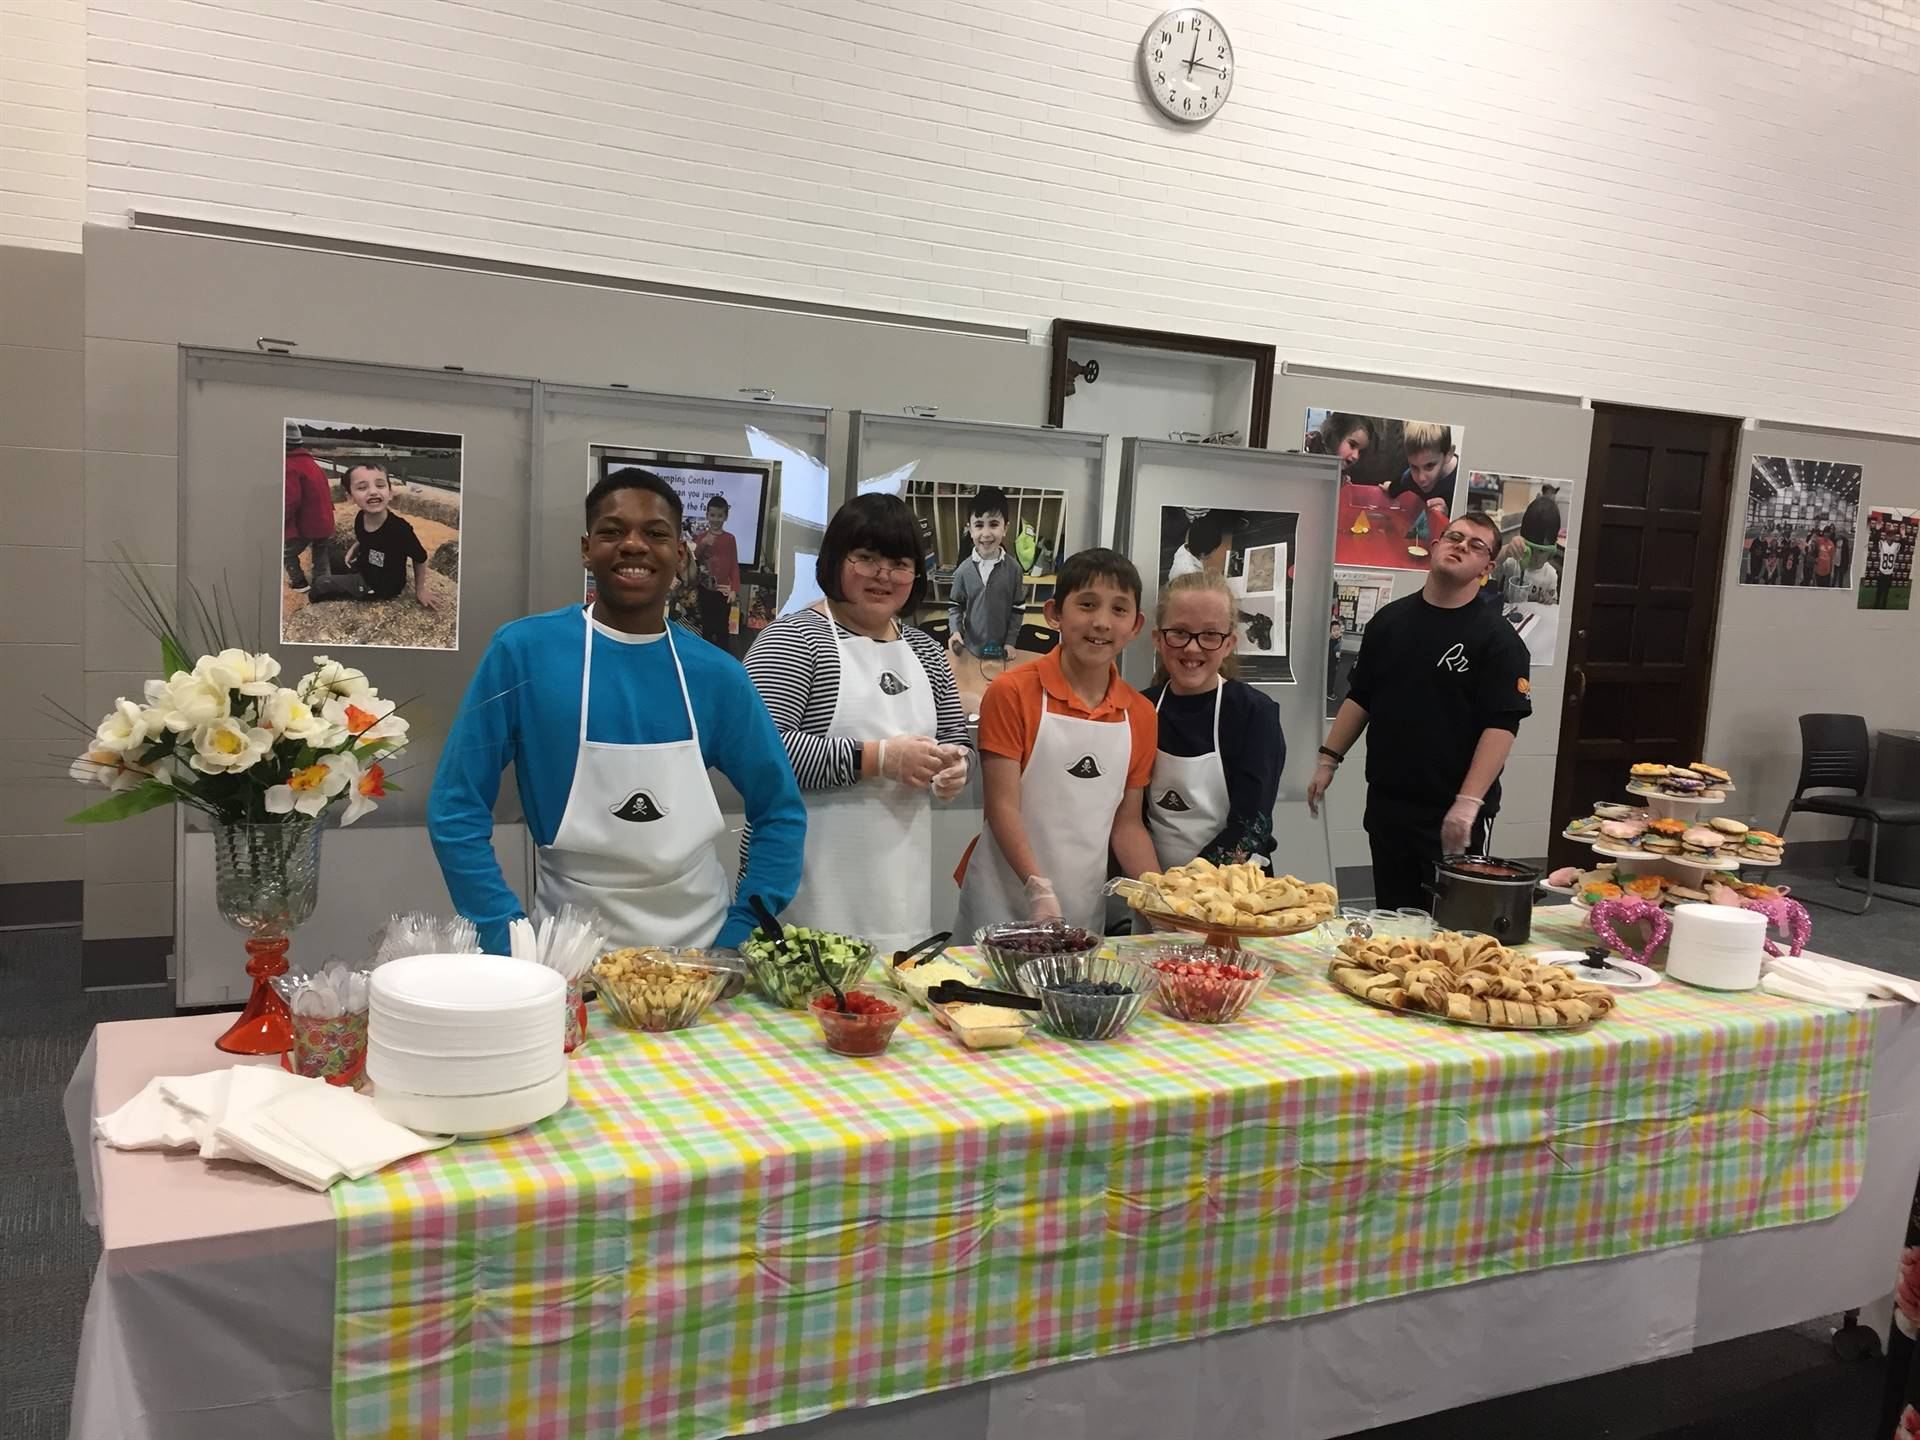 Middle School and High School Students Prepared, Presented and Served Food to Families!